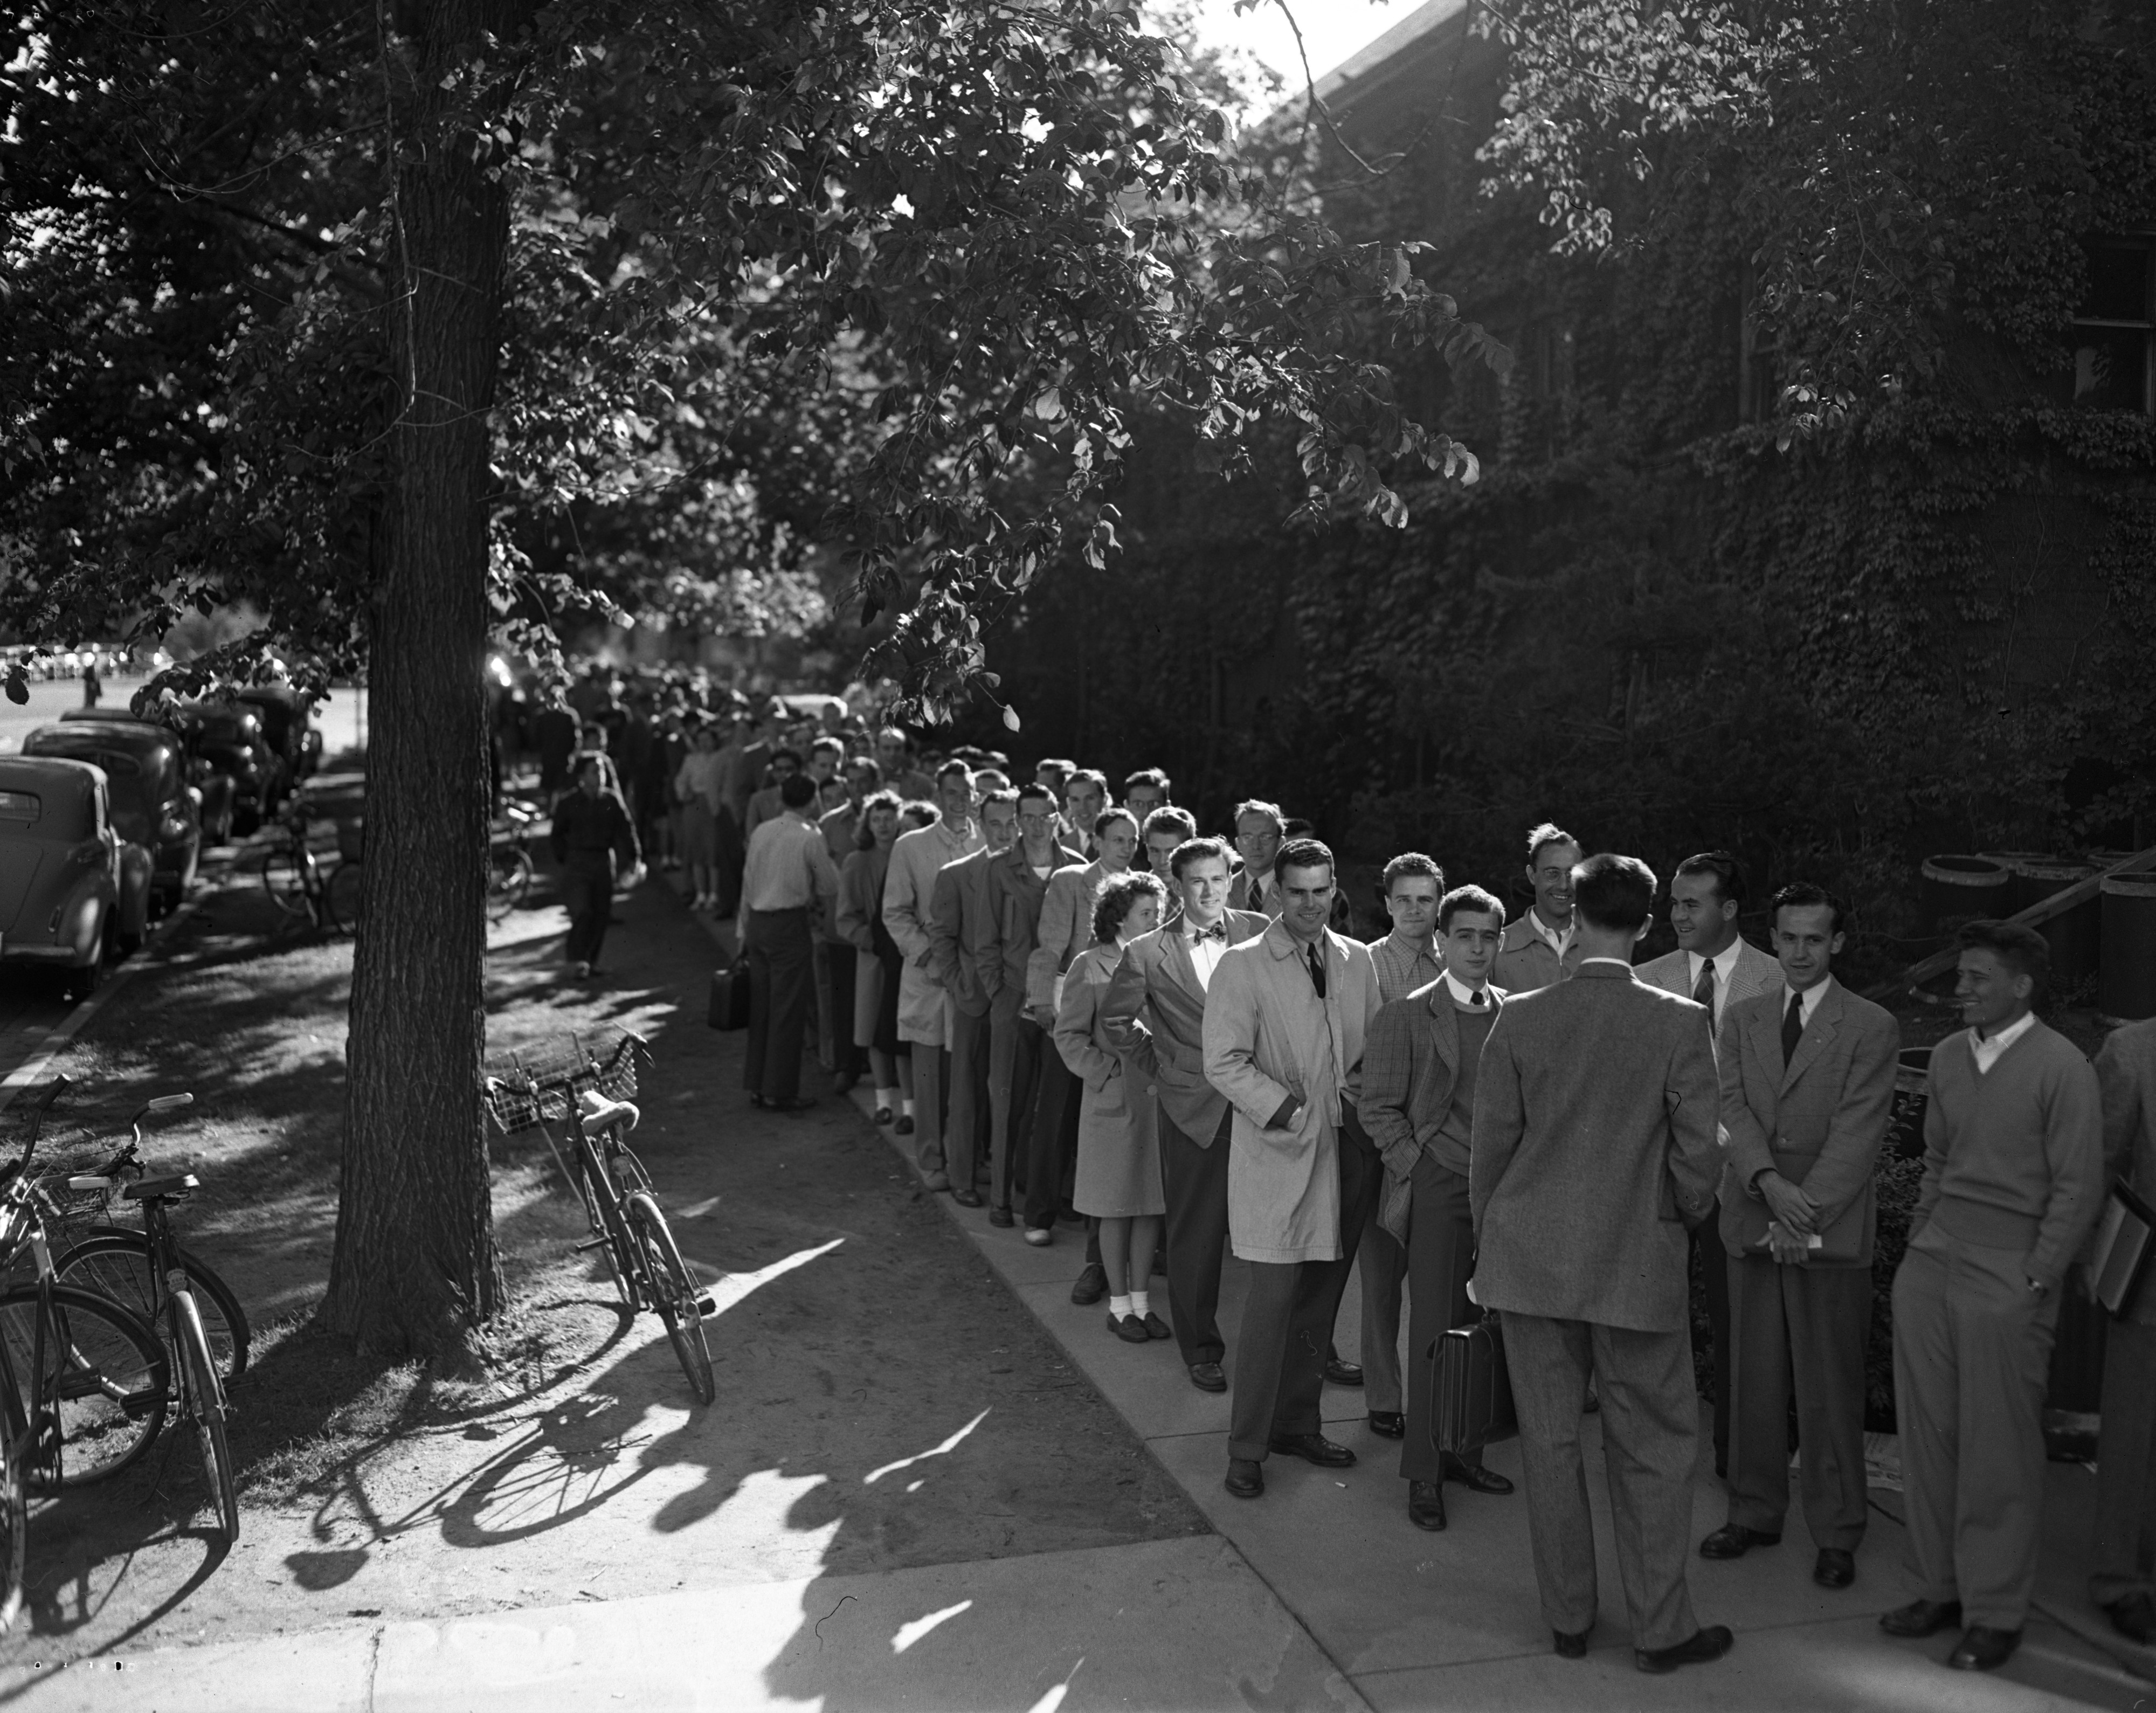 University of Michigan students in line to buy football tickets at Barbour Gym, September 1947 image